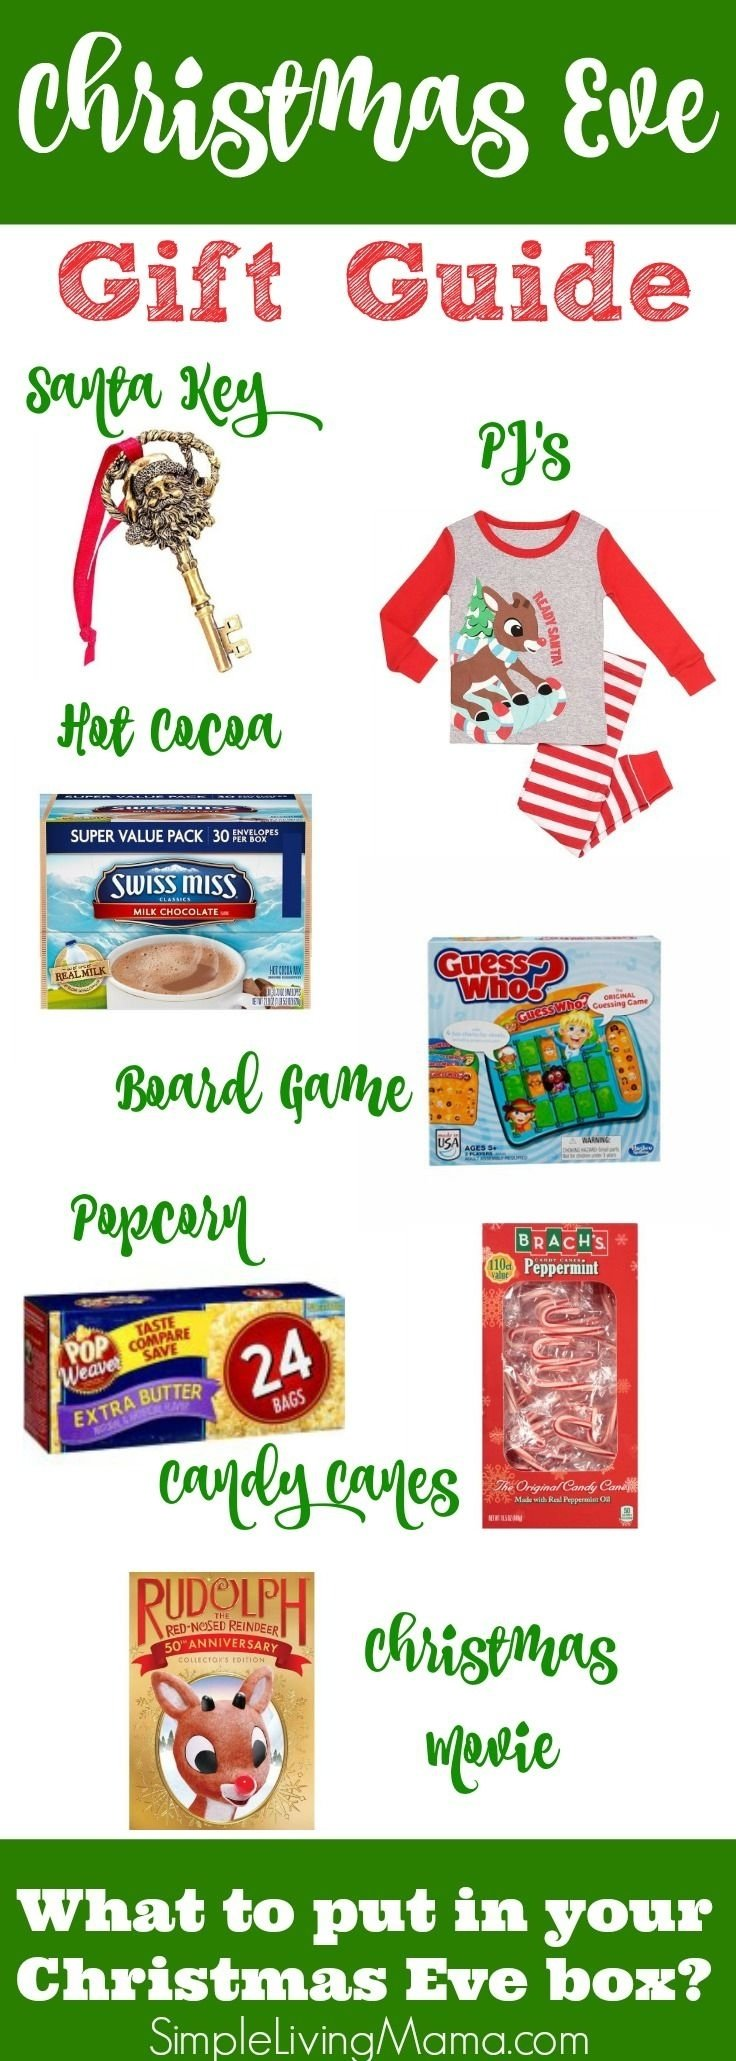 10 Gorgeous Christmas Eve Ideas For Kids christmas eve box tradition holiday traditions christmas eve and 2021